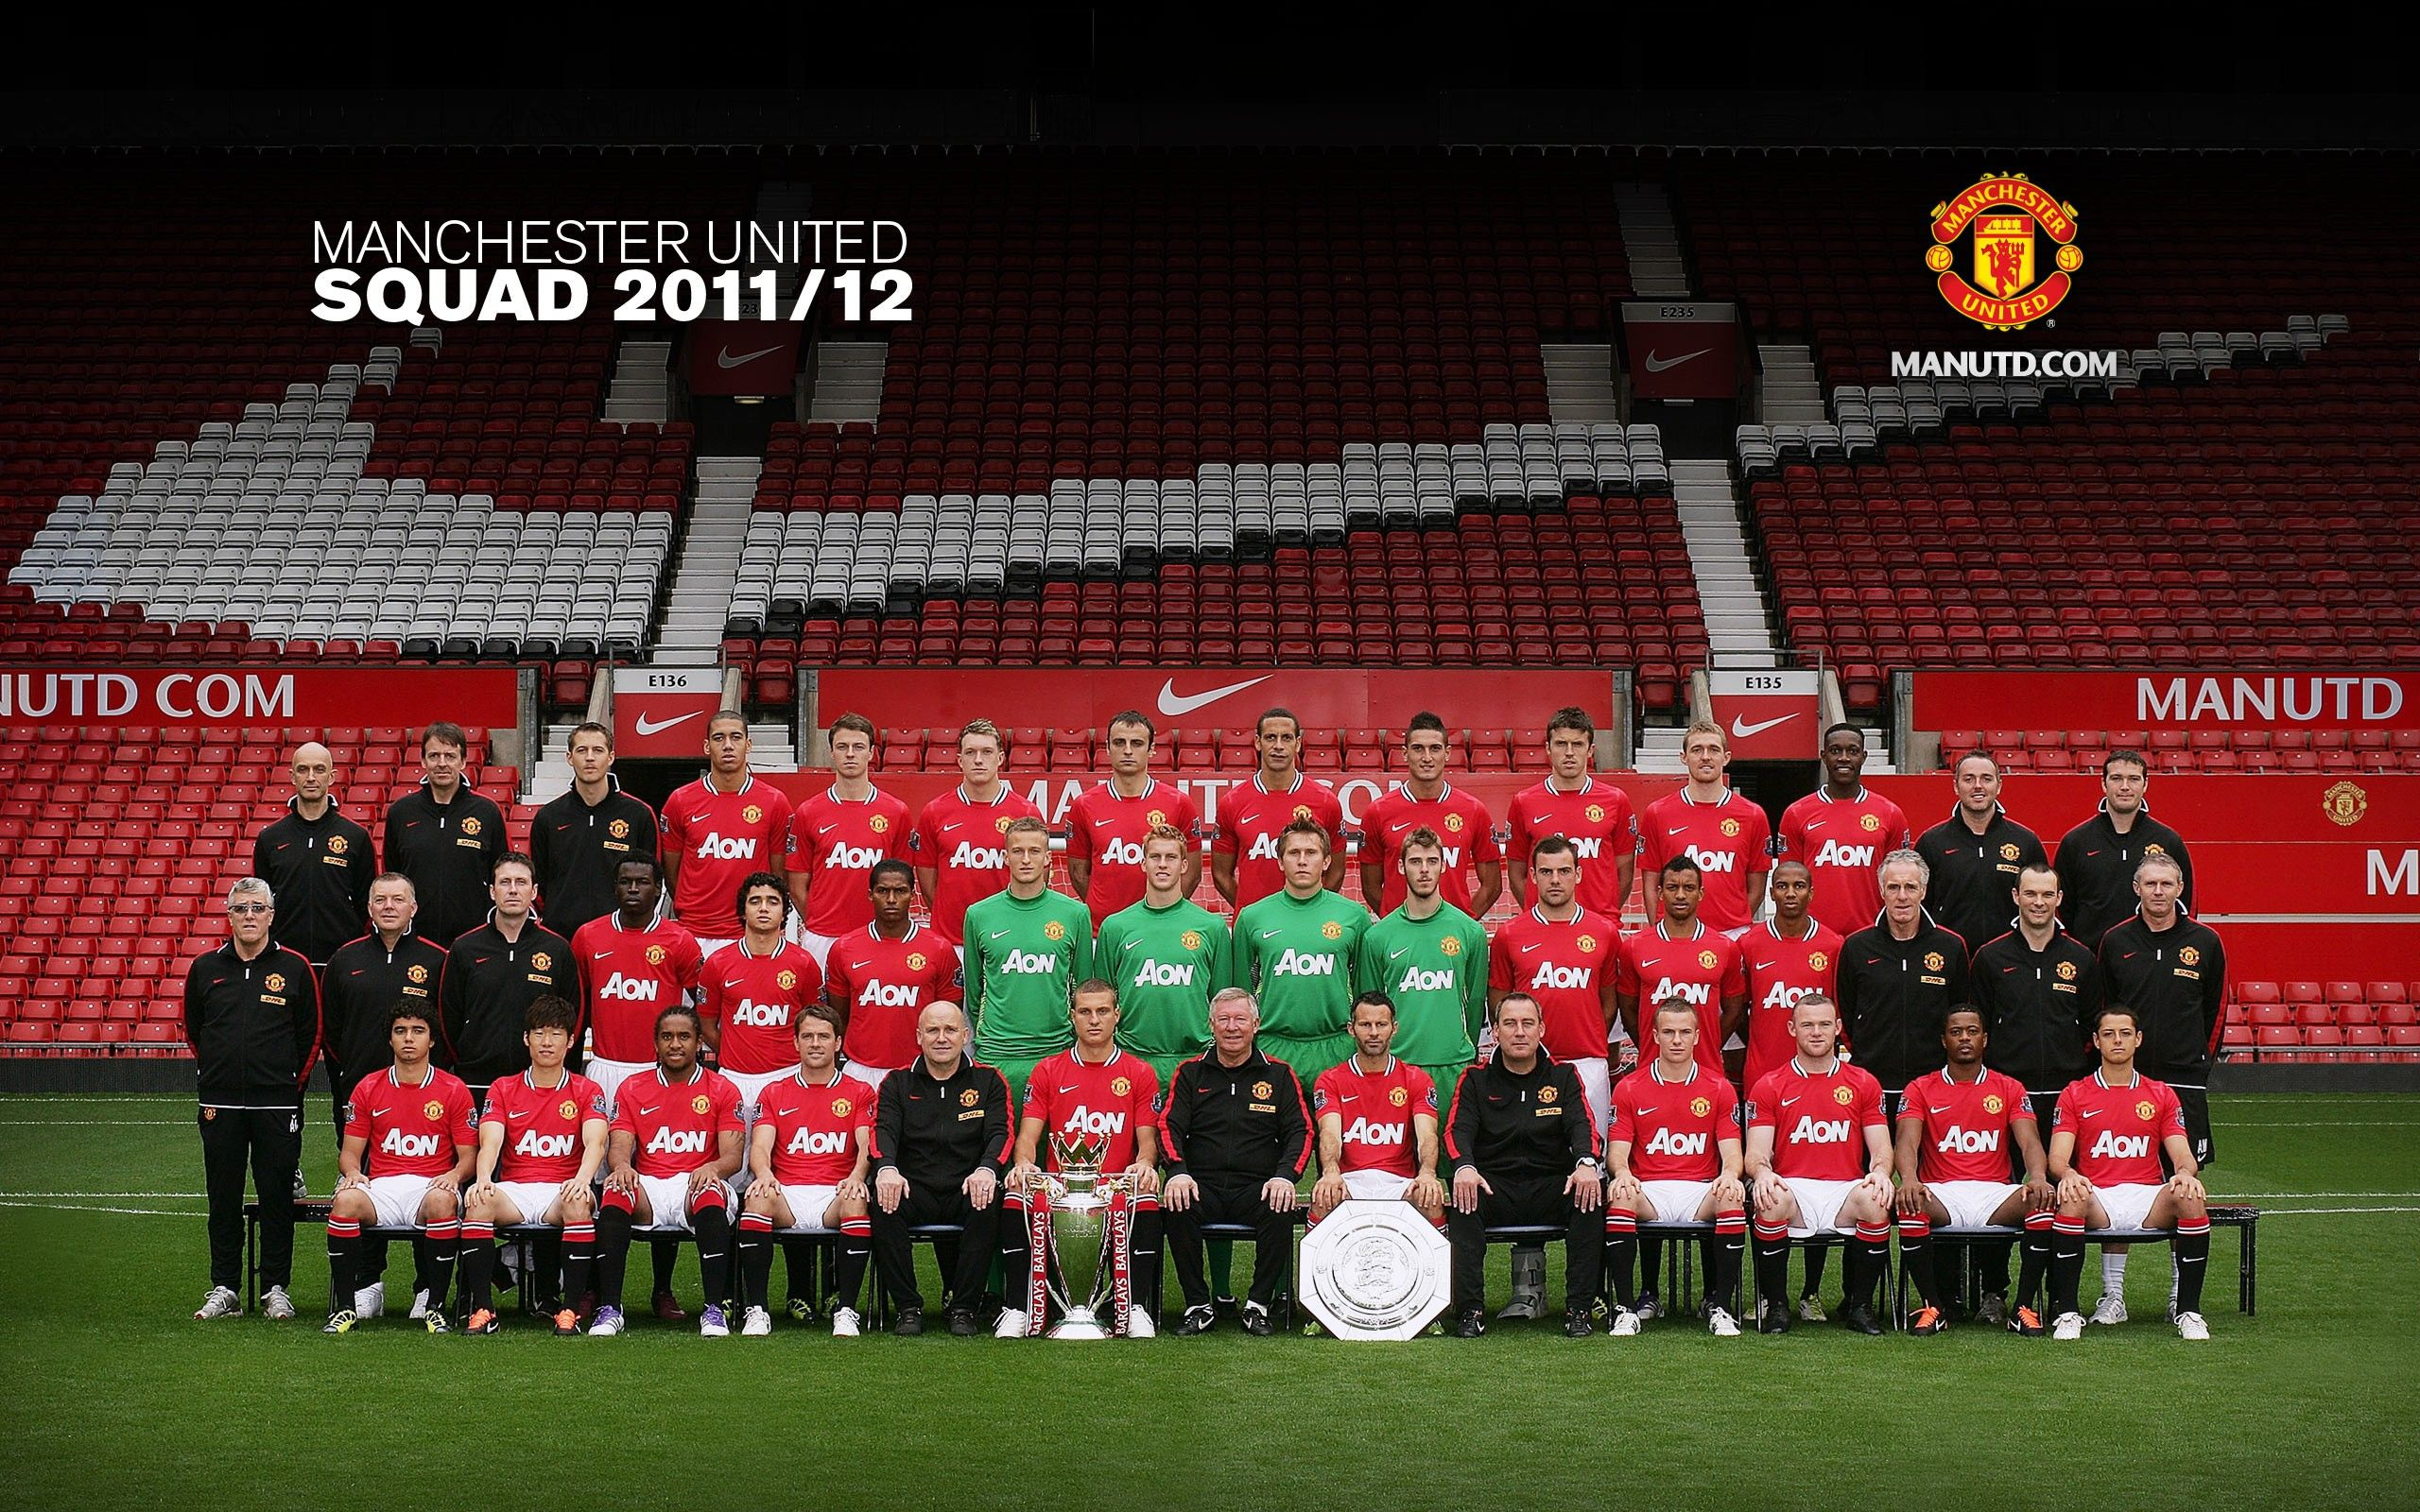 Manchester United Squad 2011 12 Manchester United Wallpaper Manchester United The Unit